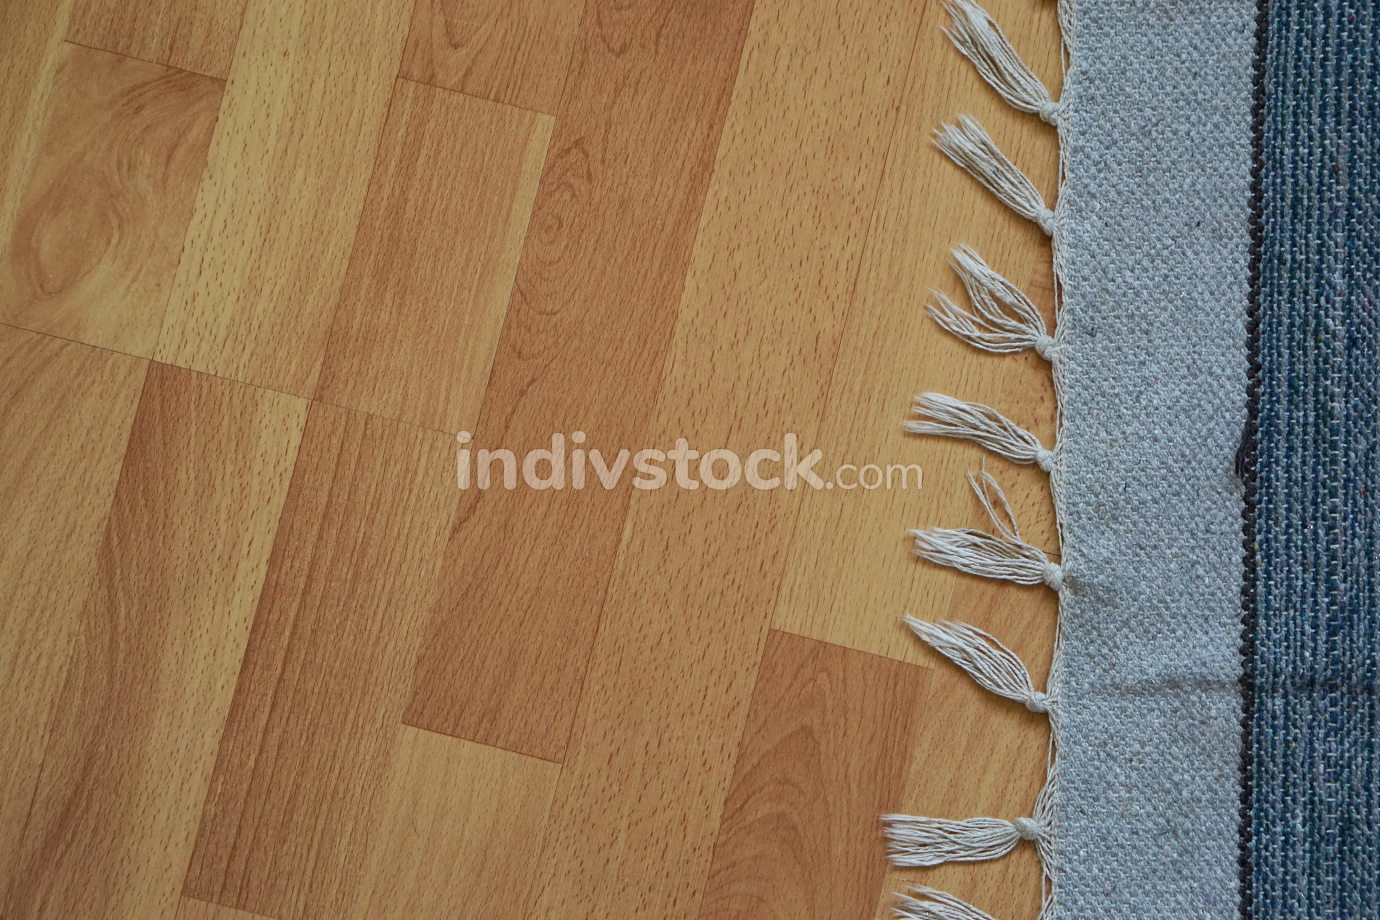 free download: comfortable wooden floor and carpet